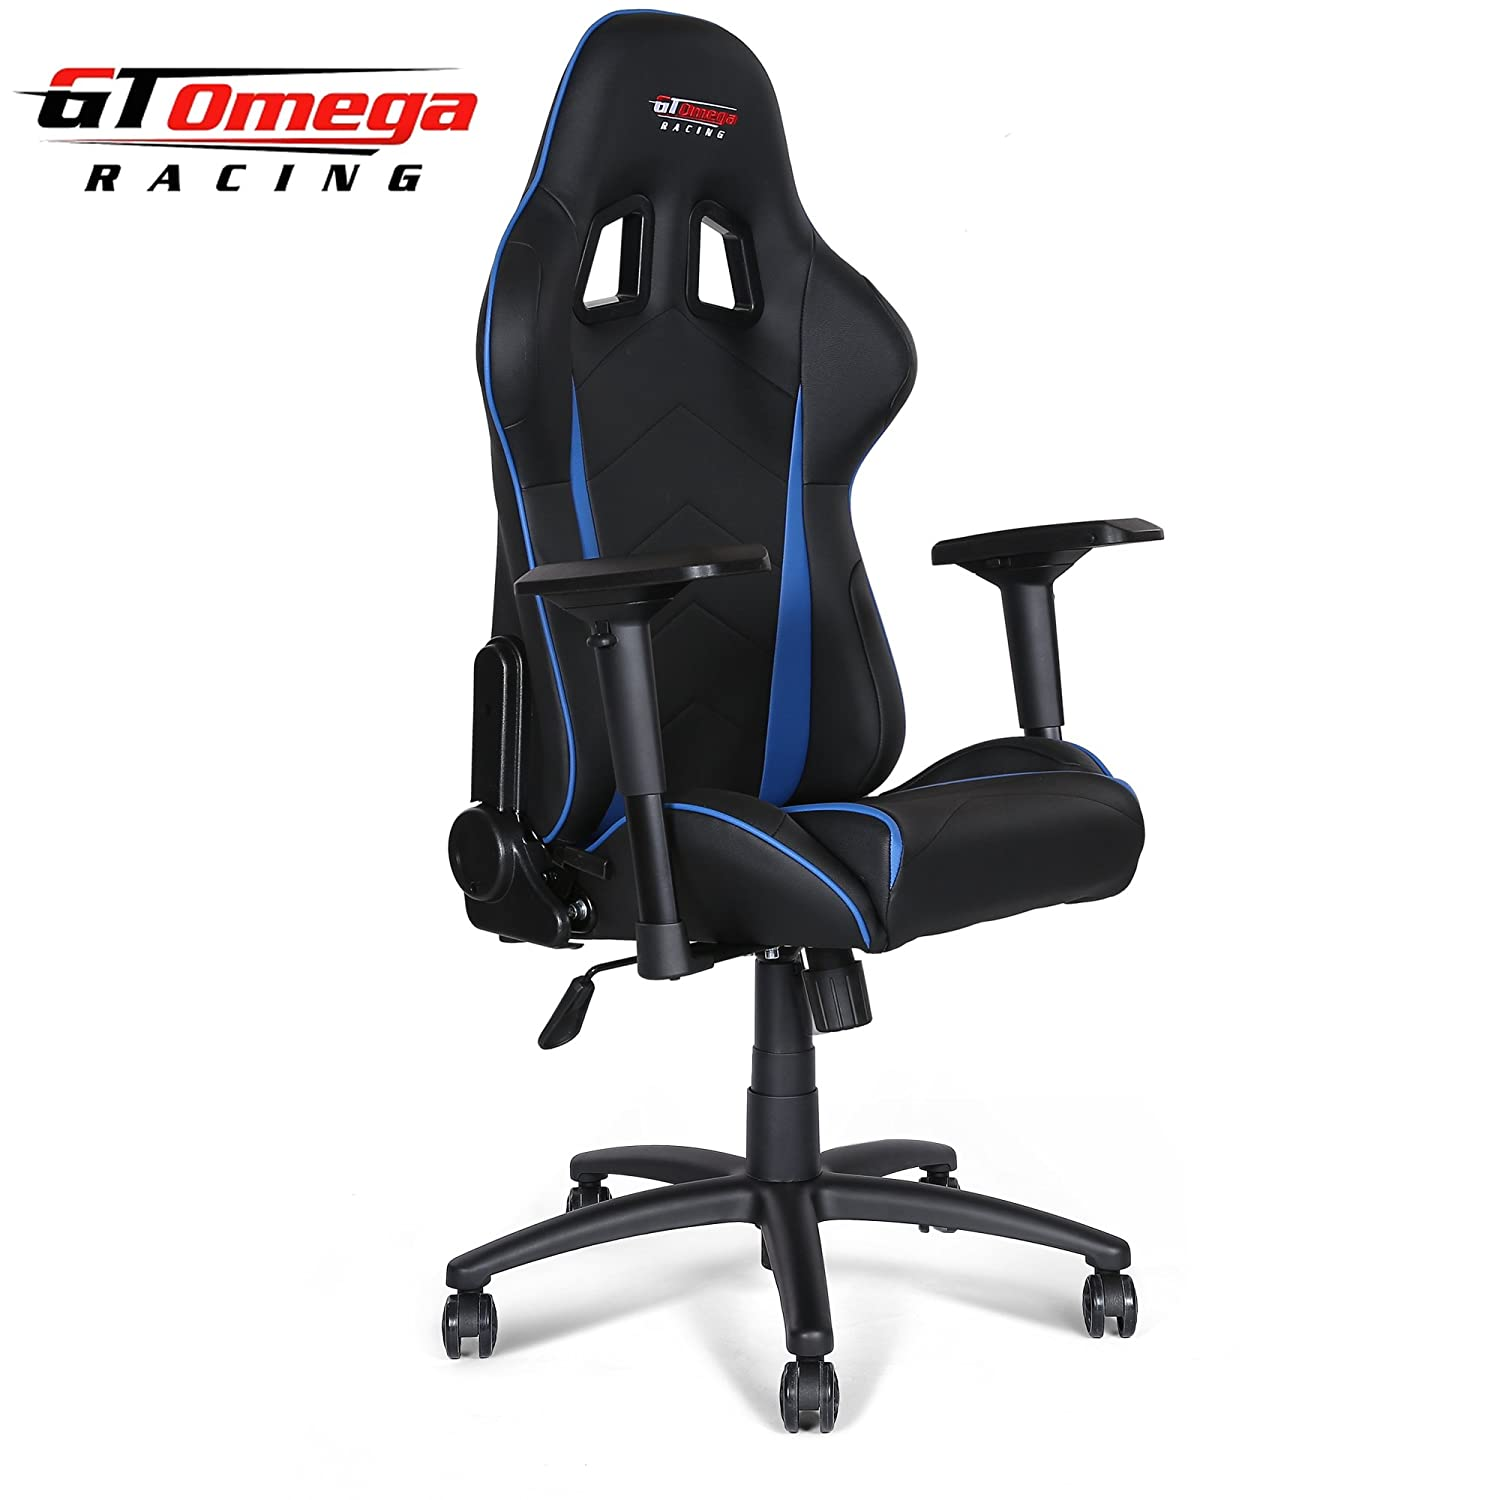 GT OMEGA PRO RACING OFFICE CHAIR BLACK NEXT BLUE LEATHER Amazon